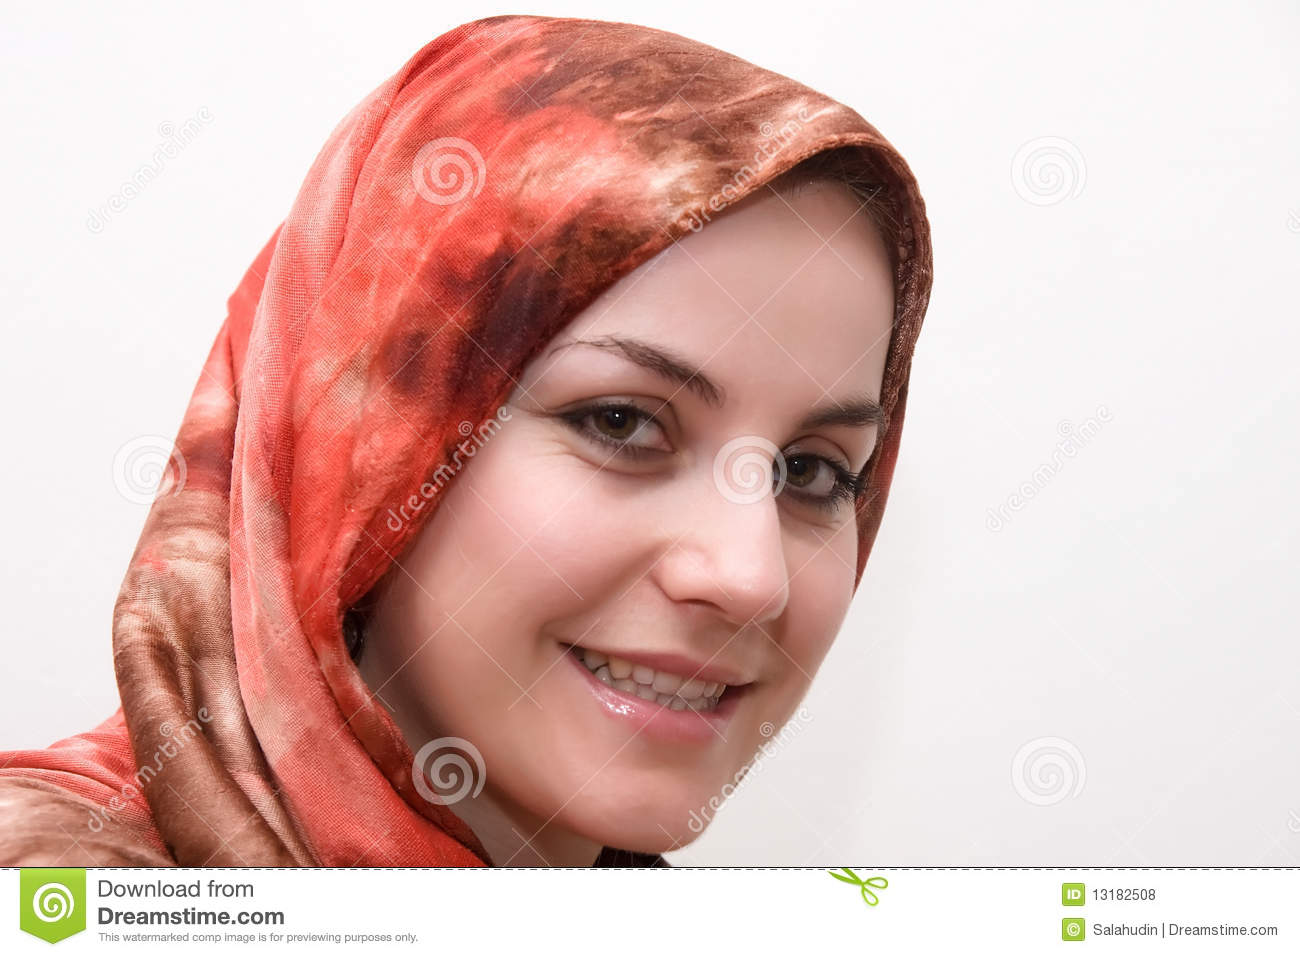 Muslim Beauty Woman Stock Photo. Image Of White, Young